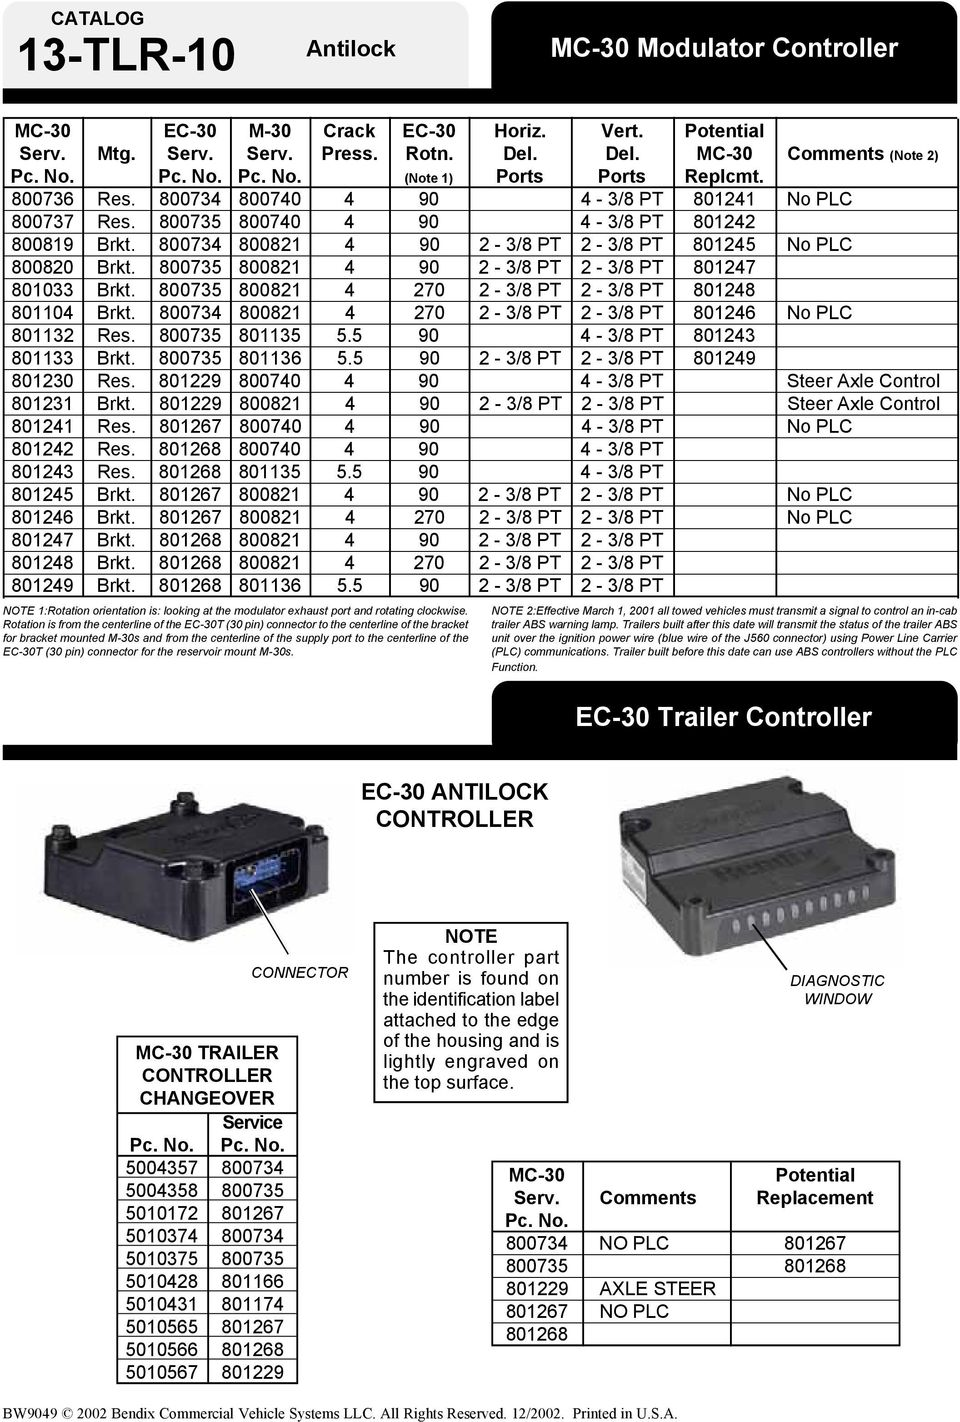 bendix ec 30 wiring diagram wiring diagram pictures \u2022 diagram bendix wiring k109808 bendix abs for trailers pdf rh docplayer net bendix abs bendix abs traction control faults